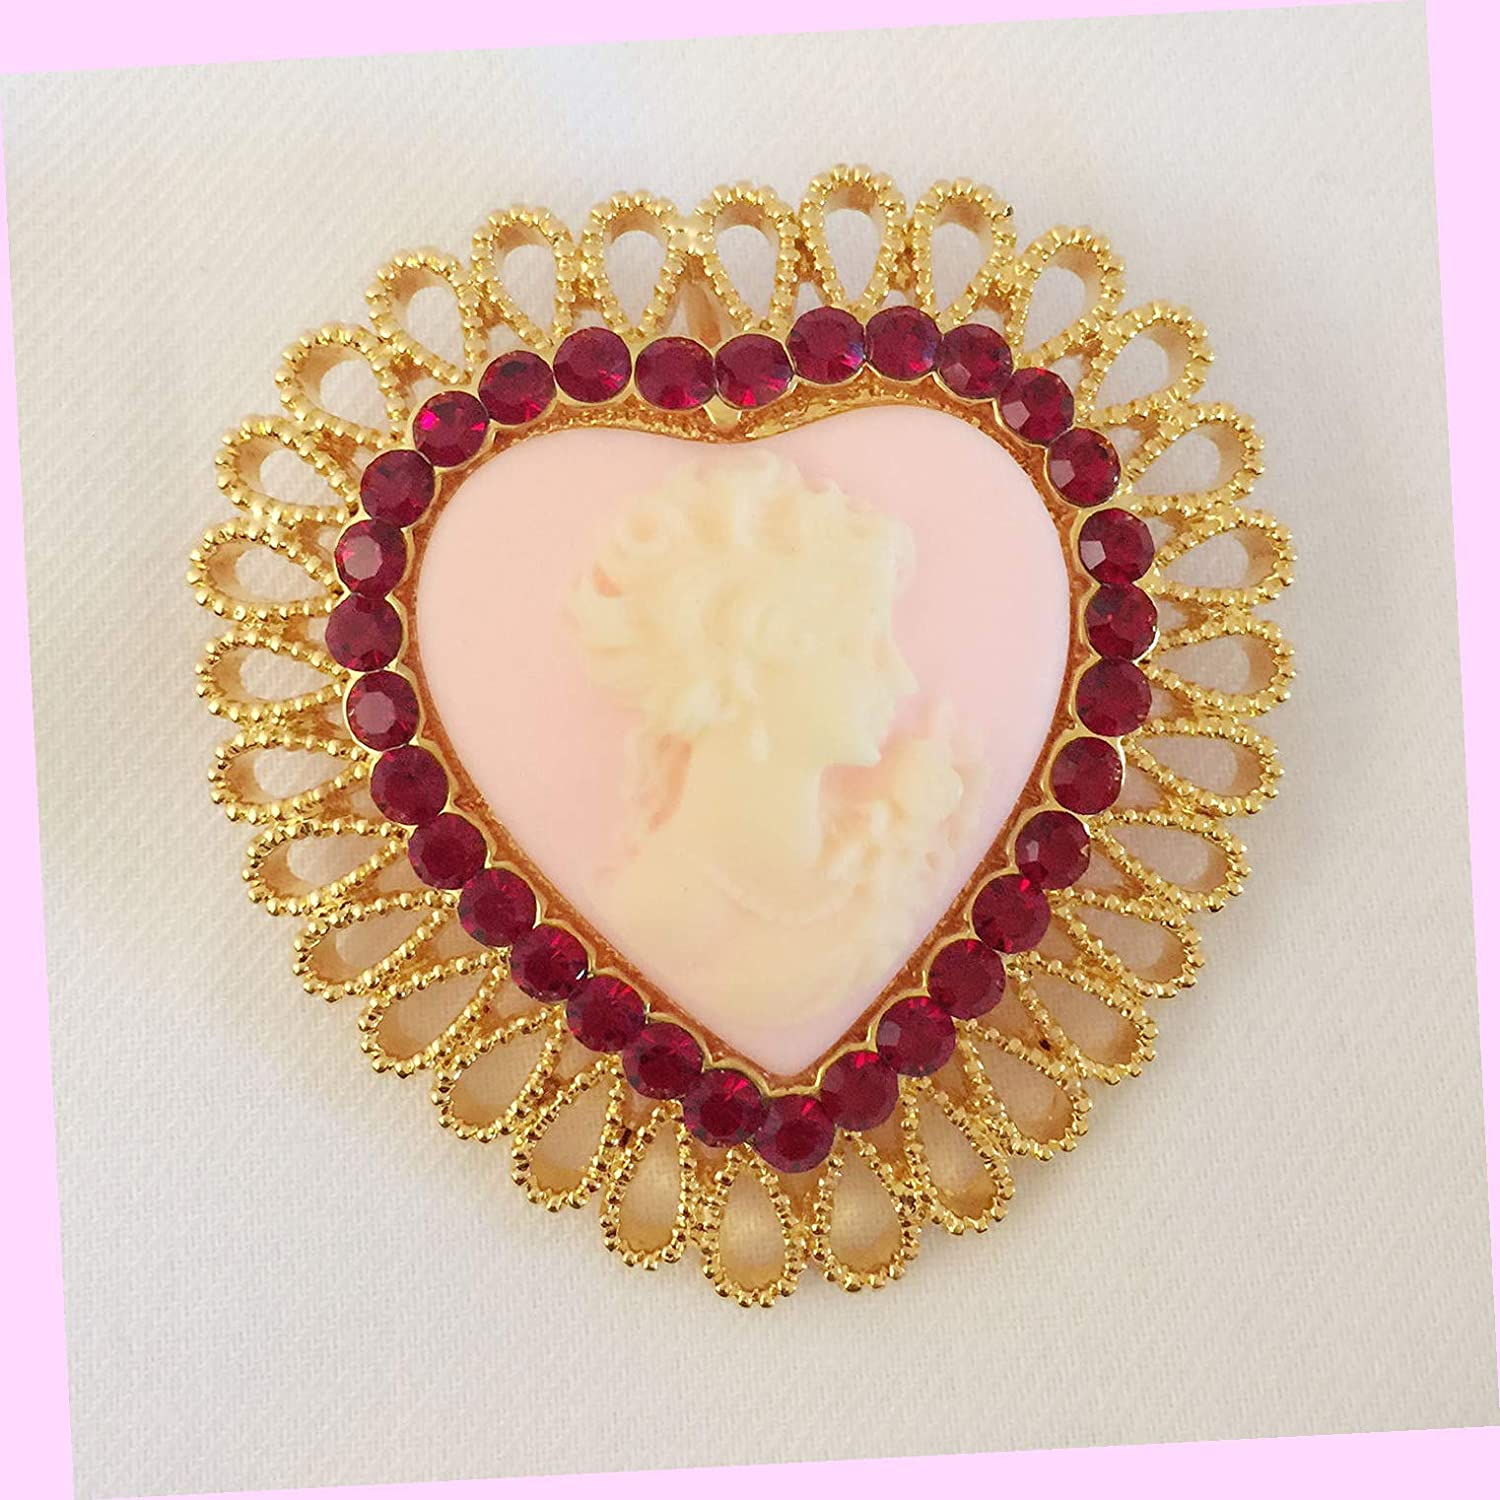 Heart Vintage Style Cameo Brooch & Pendant Pin Love Wedding Party Br1070 Rhinestone Brooch Pin for Women